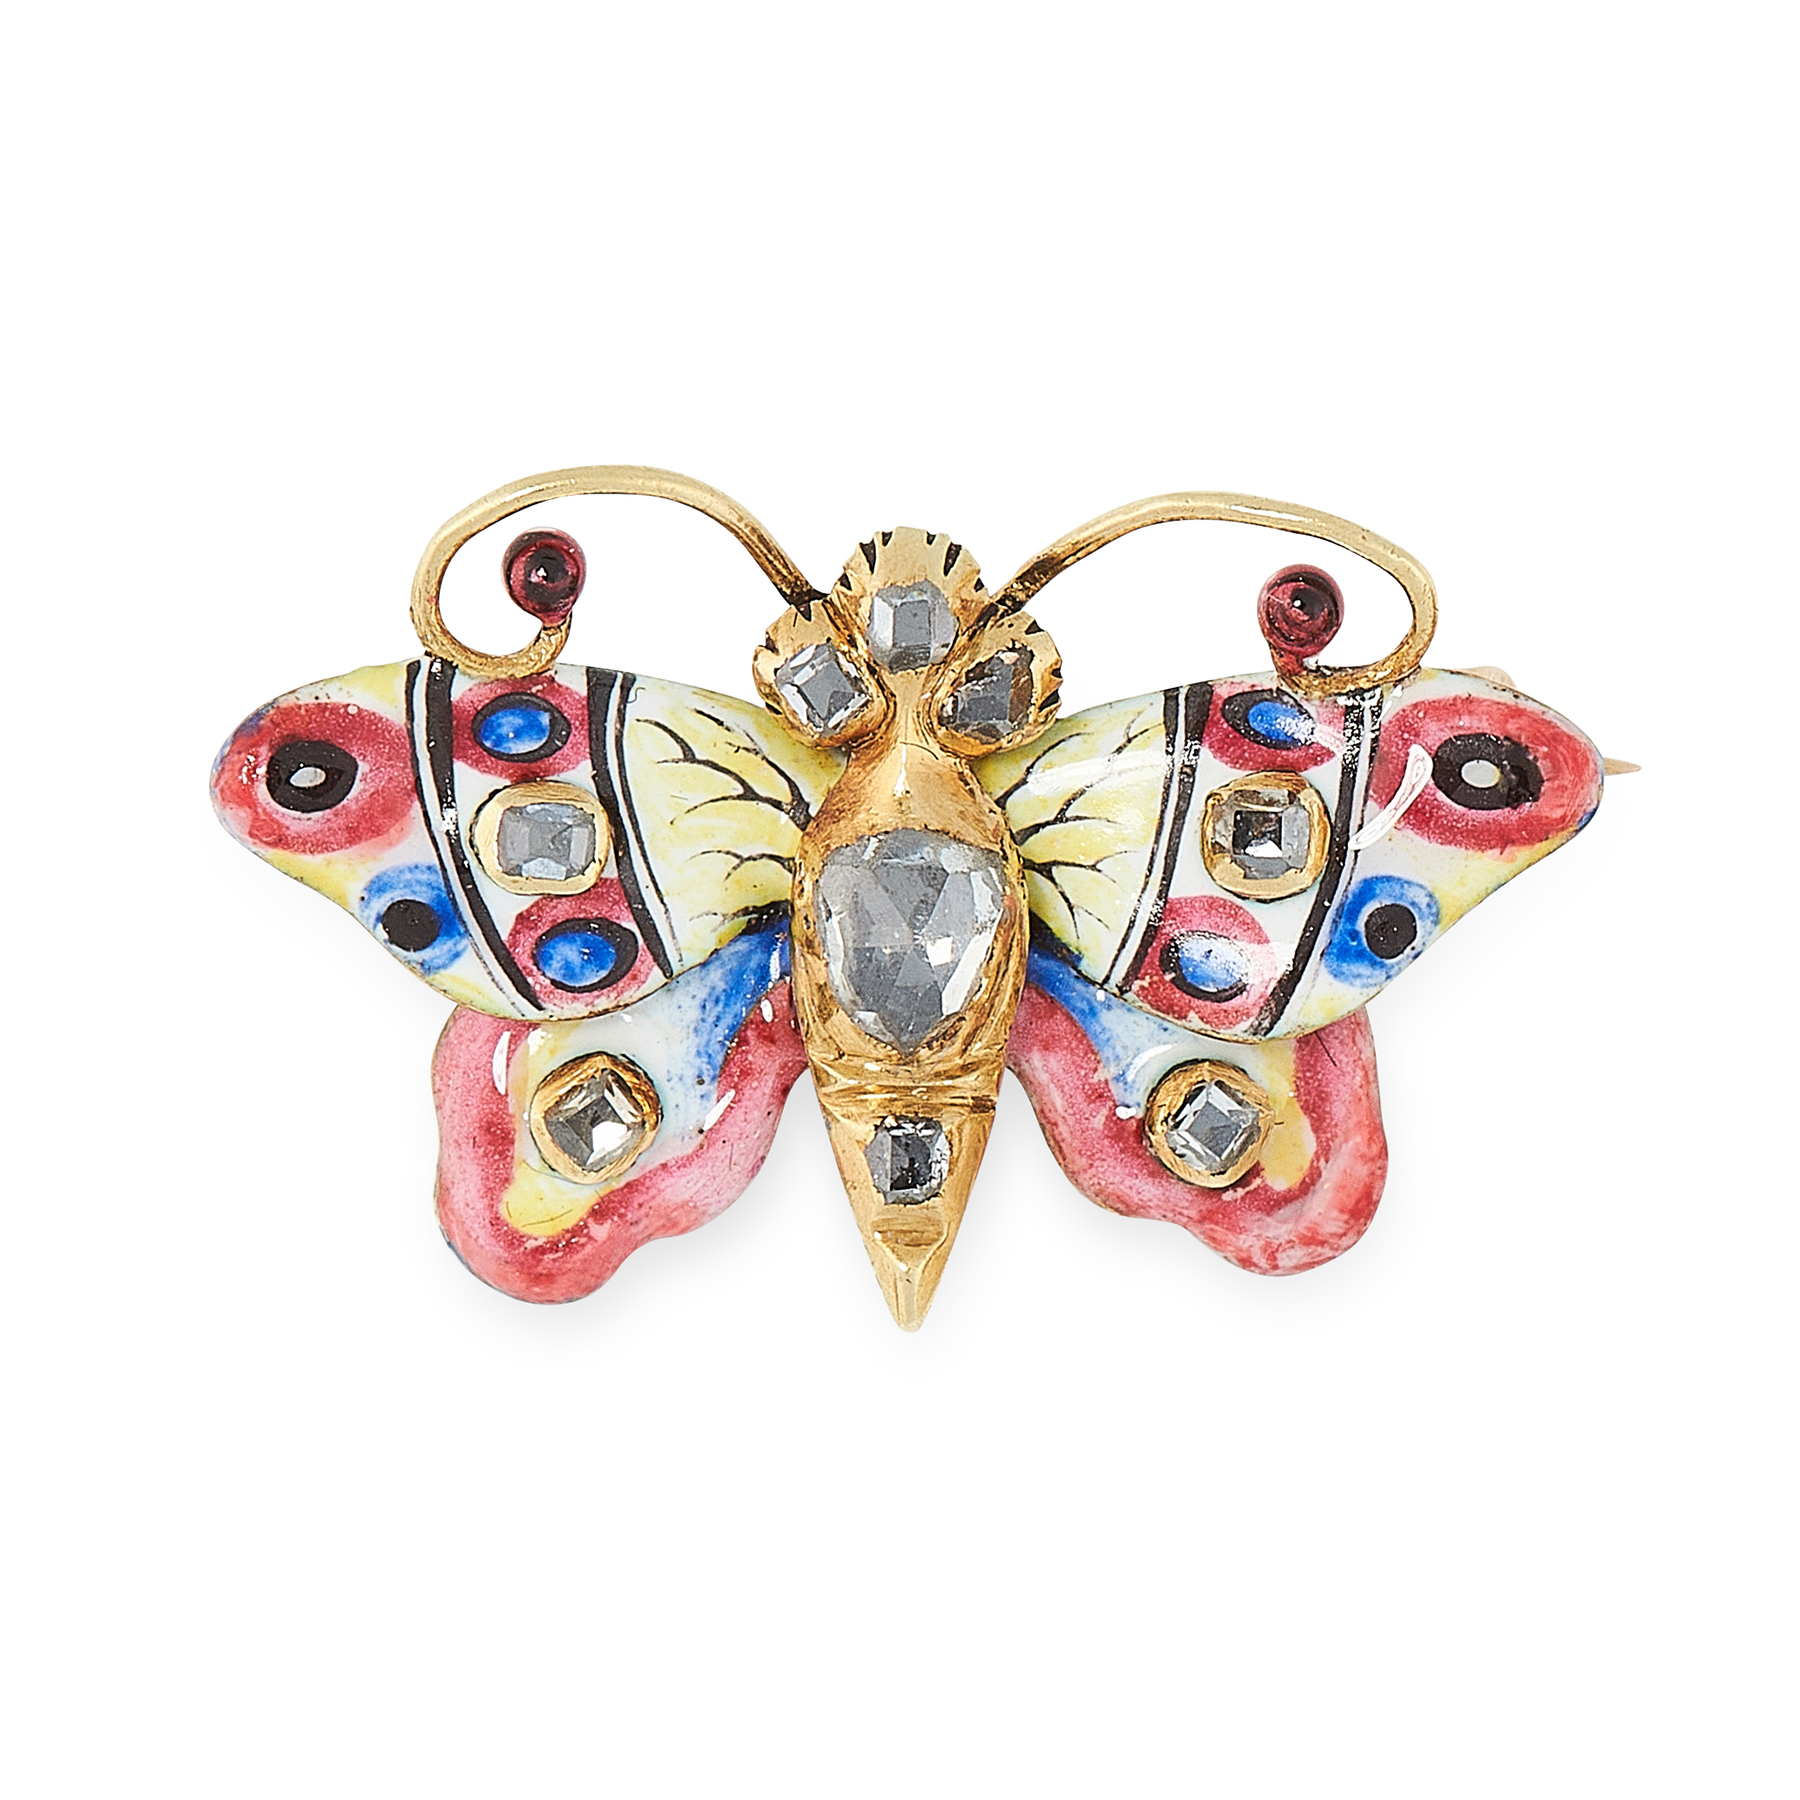 A RARE ANTIQUE DIAMOND AND ENAMEL BUTTERFLY BROOCH, 19TH CENTURY in yellow gold, designed as a